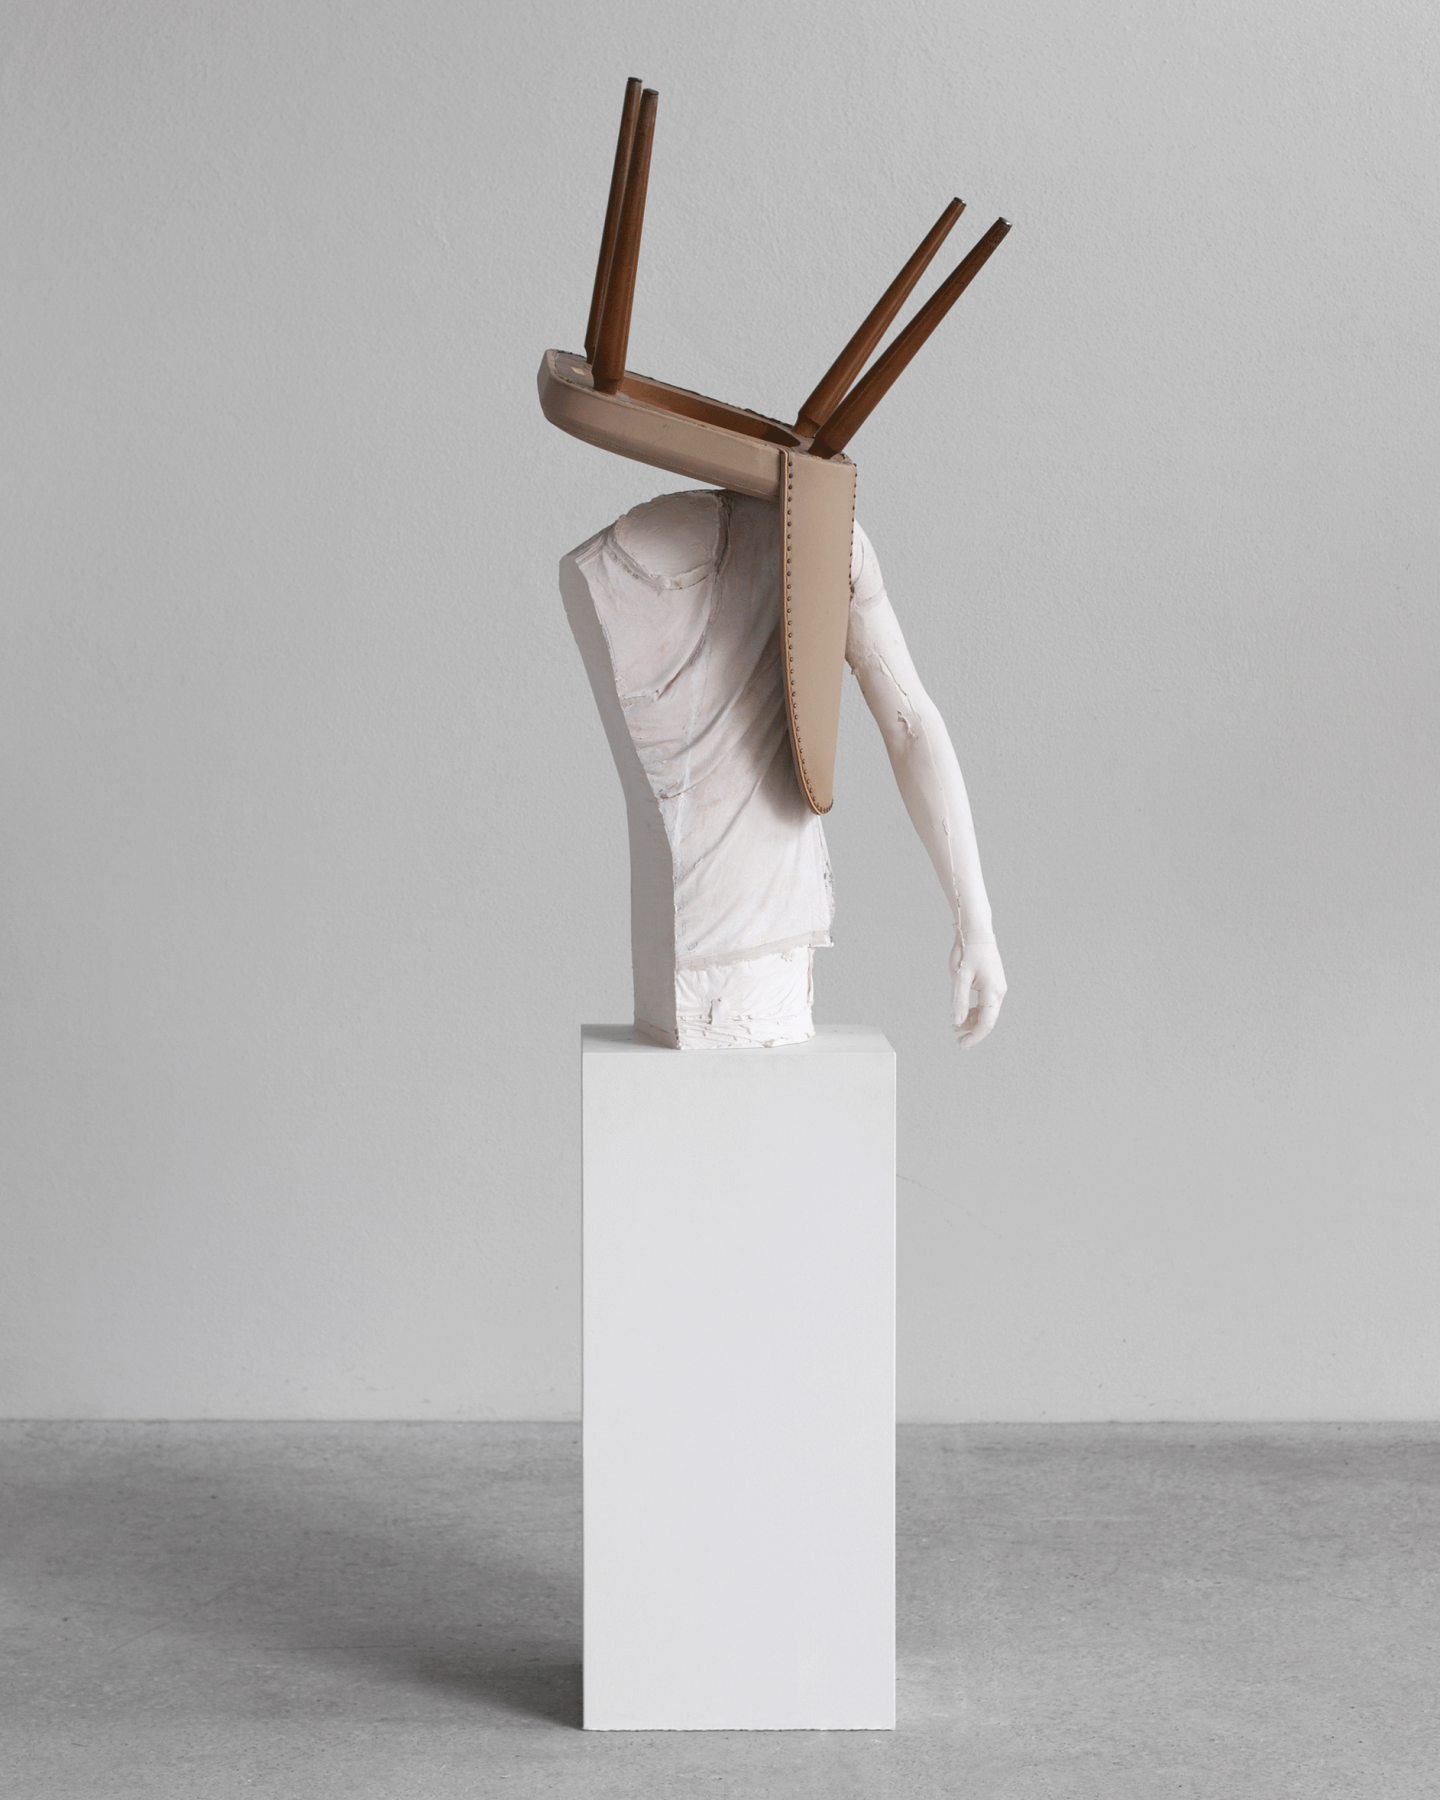 ERWIN WURM, Untitled (with chair) (One Minute Forever), 2019